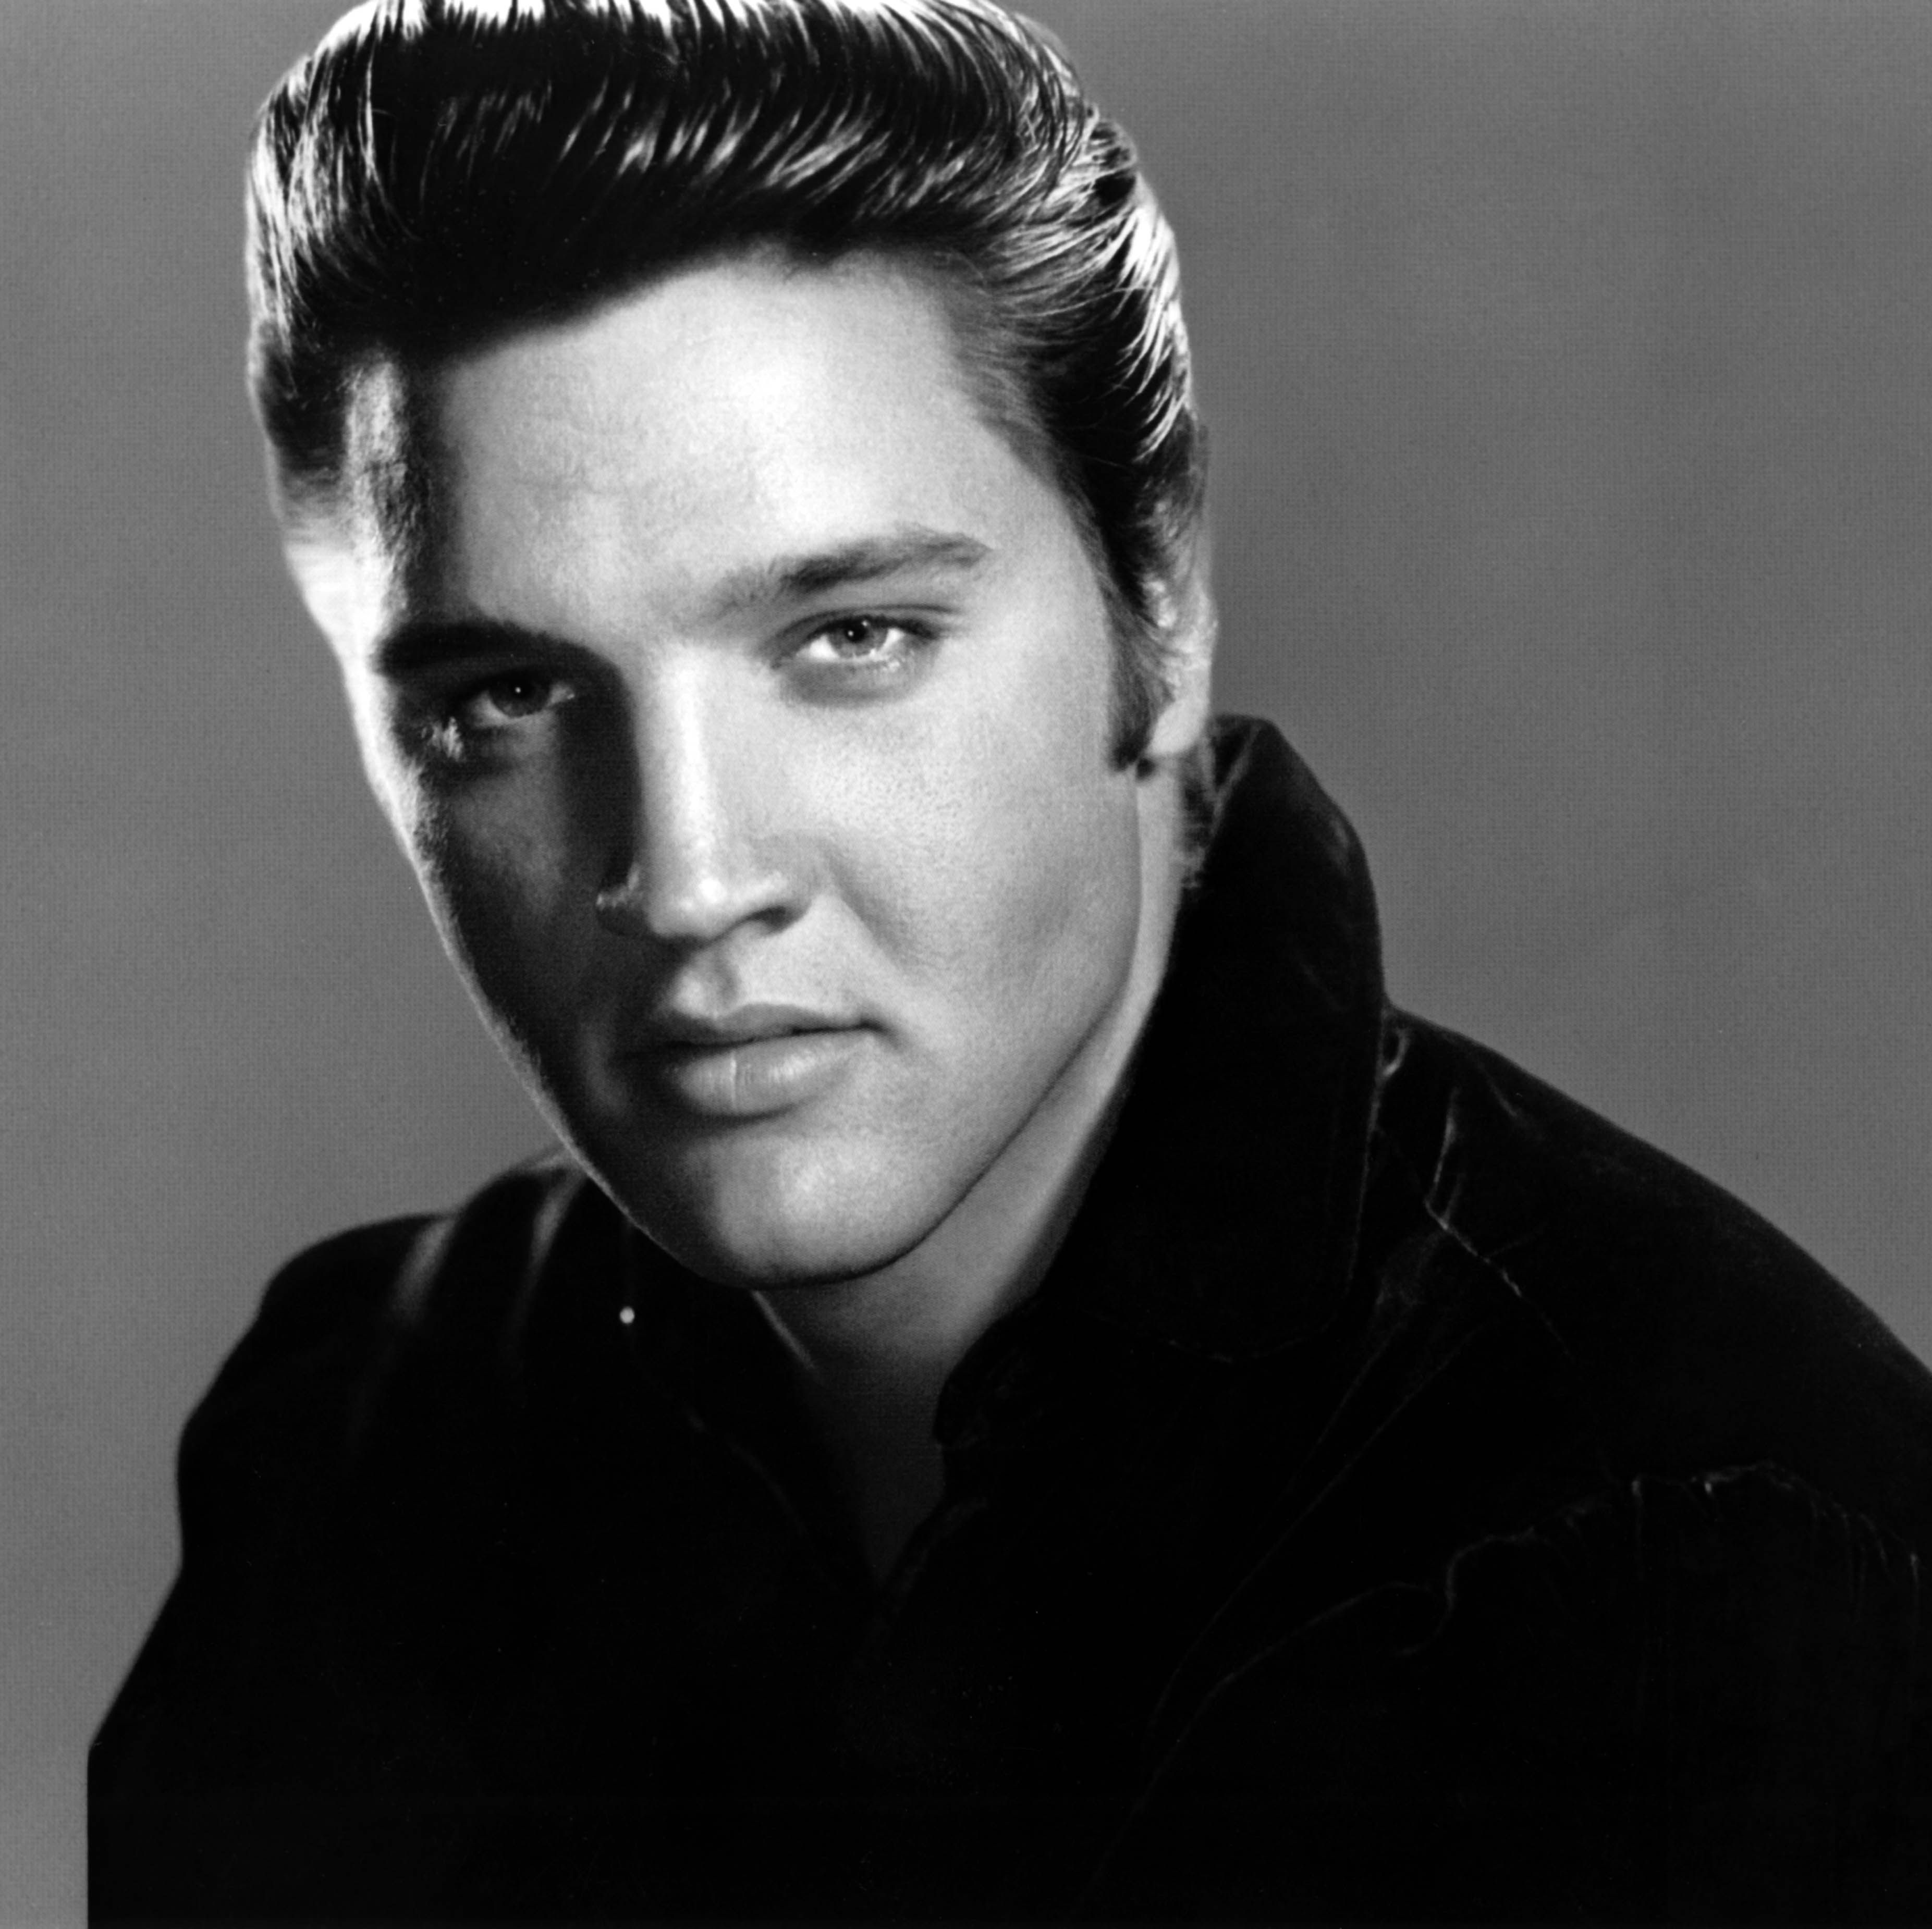 Inside the Enduring Mysteries of Elvis Presley's Death